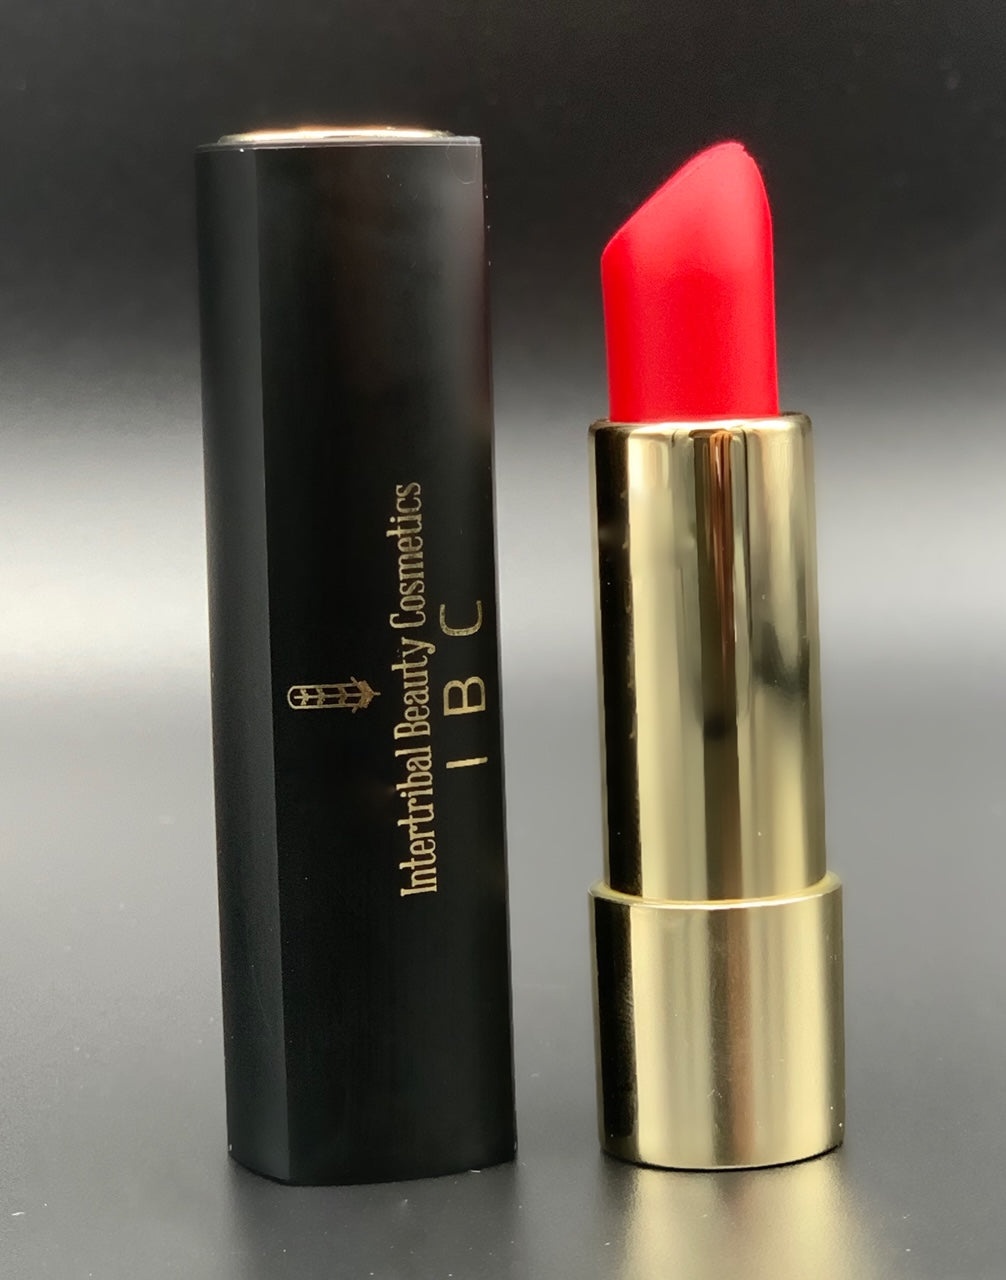 FIERCE satin lipstick